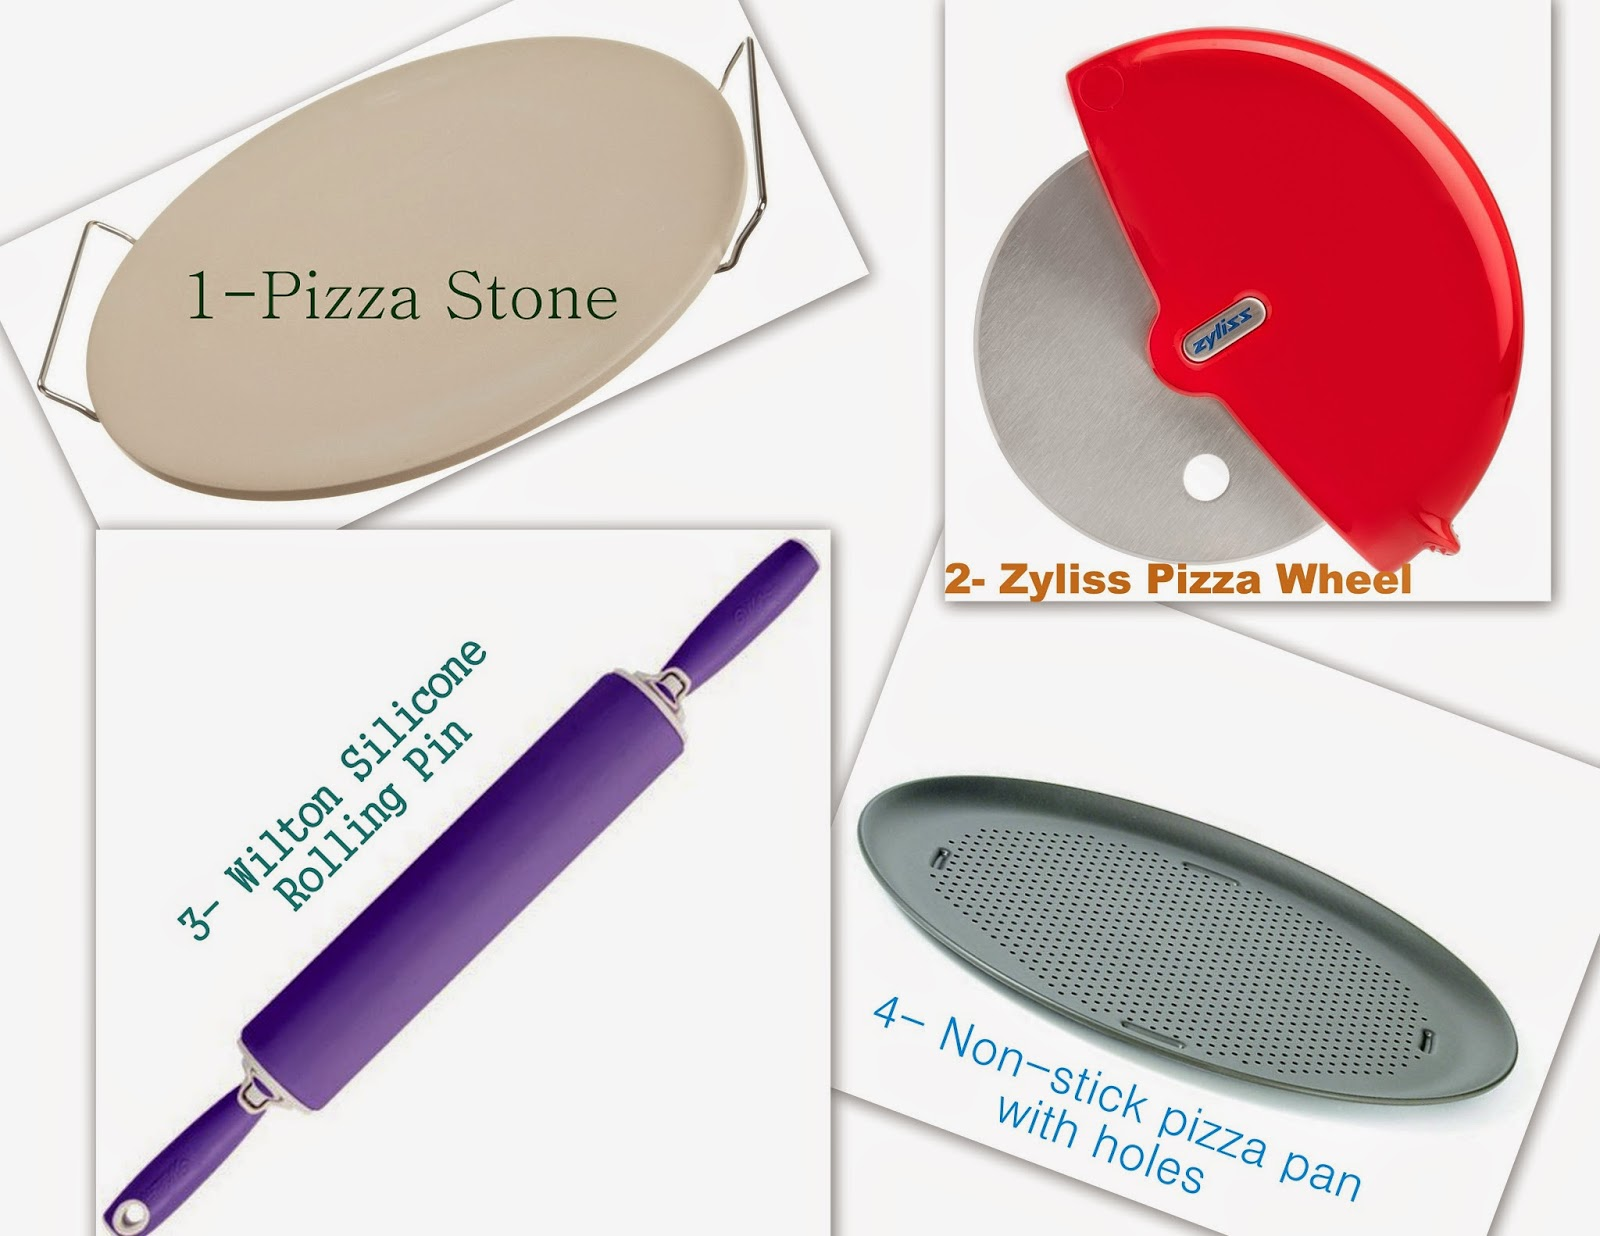 Pizza tools, favorites